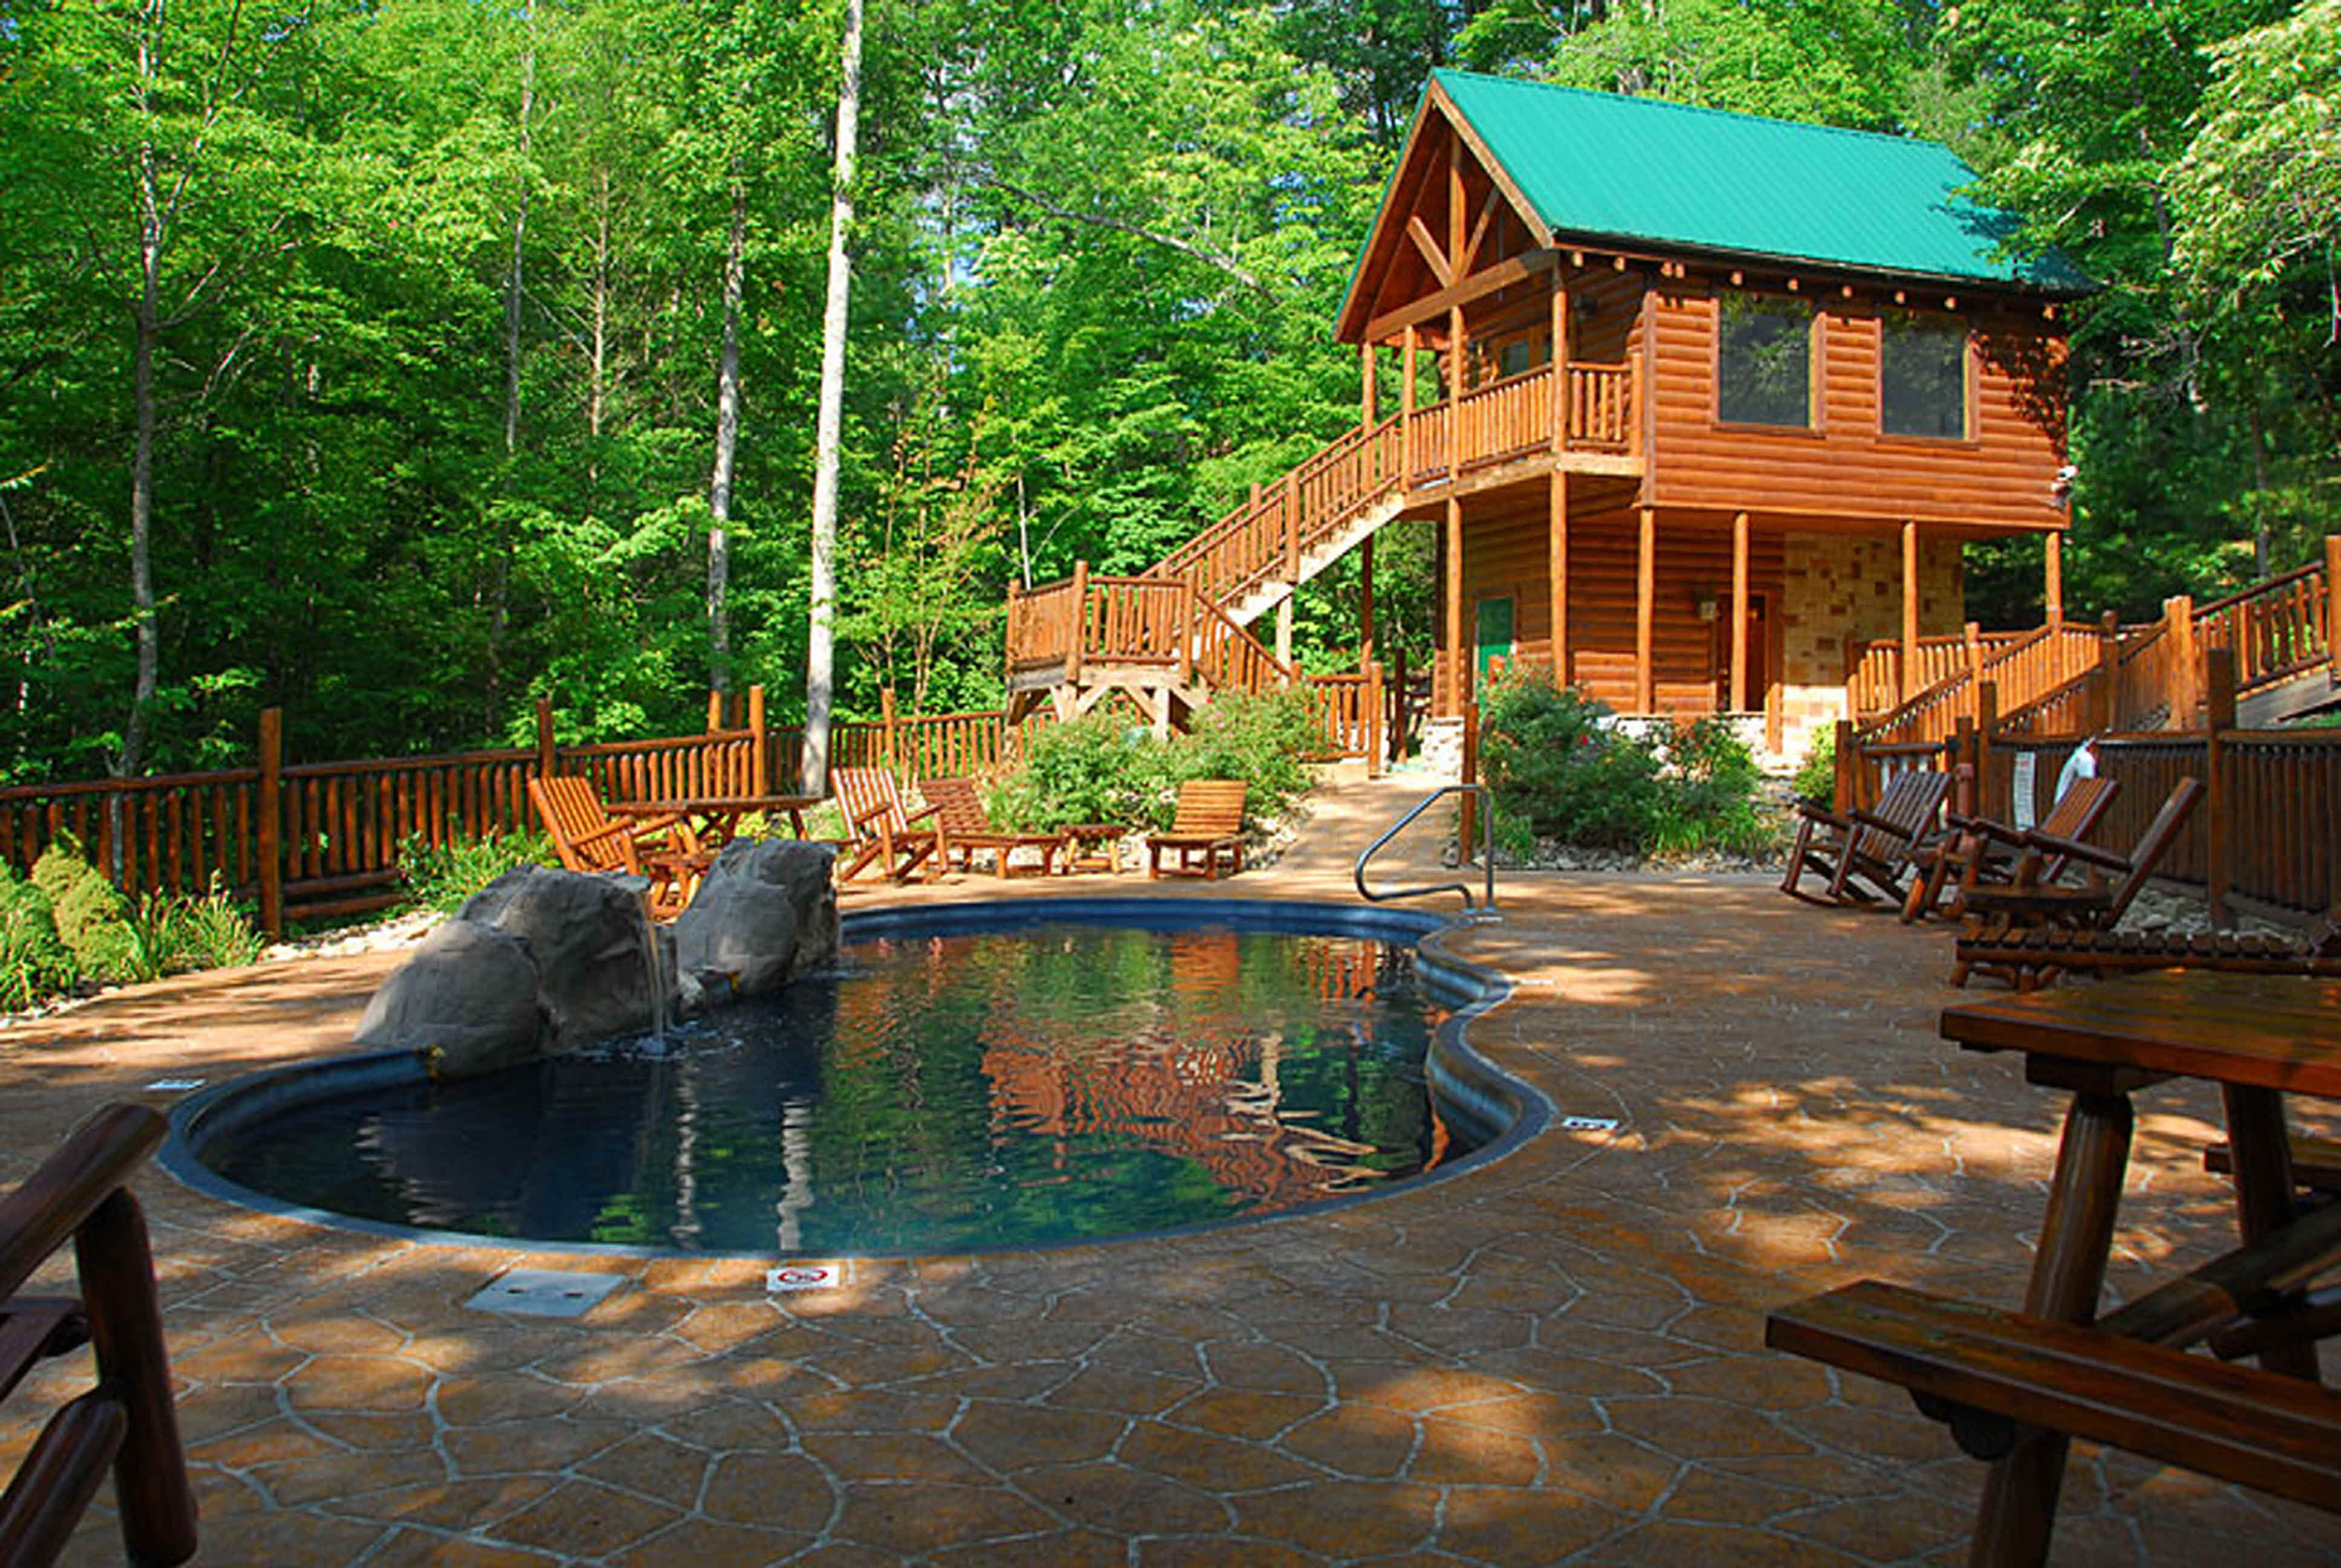 Black Bear Ridge 4 Bedroom Cabin Rental